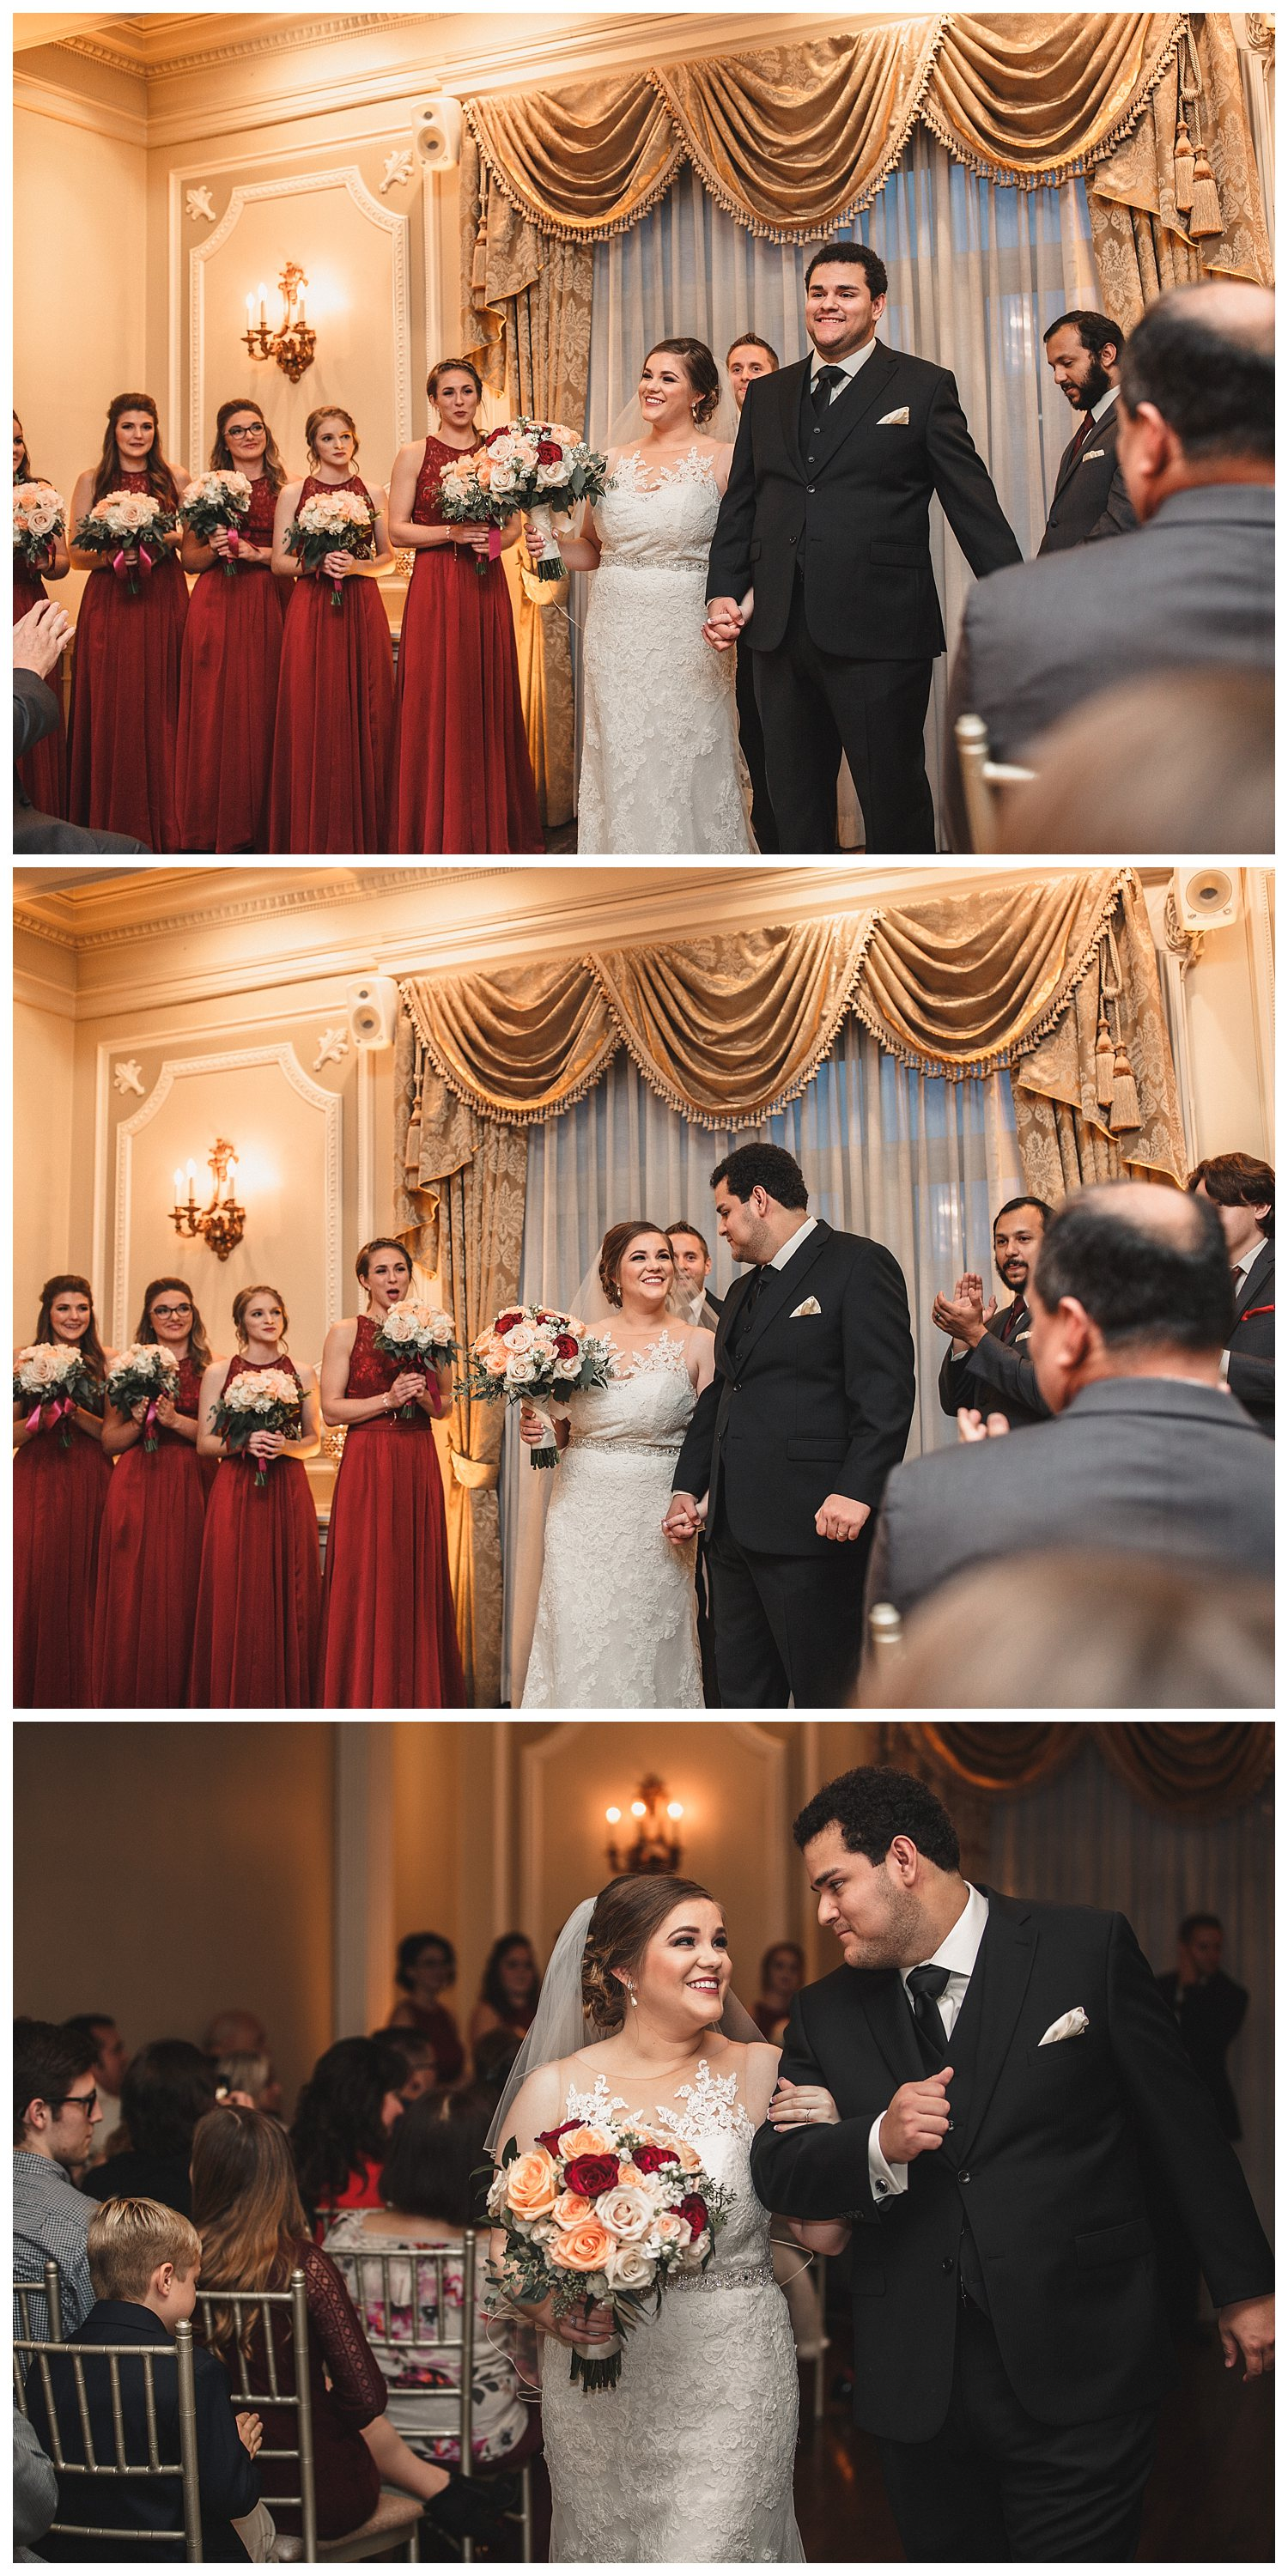 Kelsey_Diane_Photography_Loose_Mansion_Wedding_Photography_Kansas_City_Victor_Lyndsay_0151.jpg